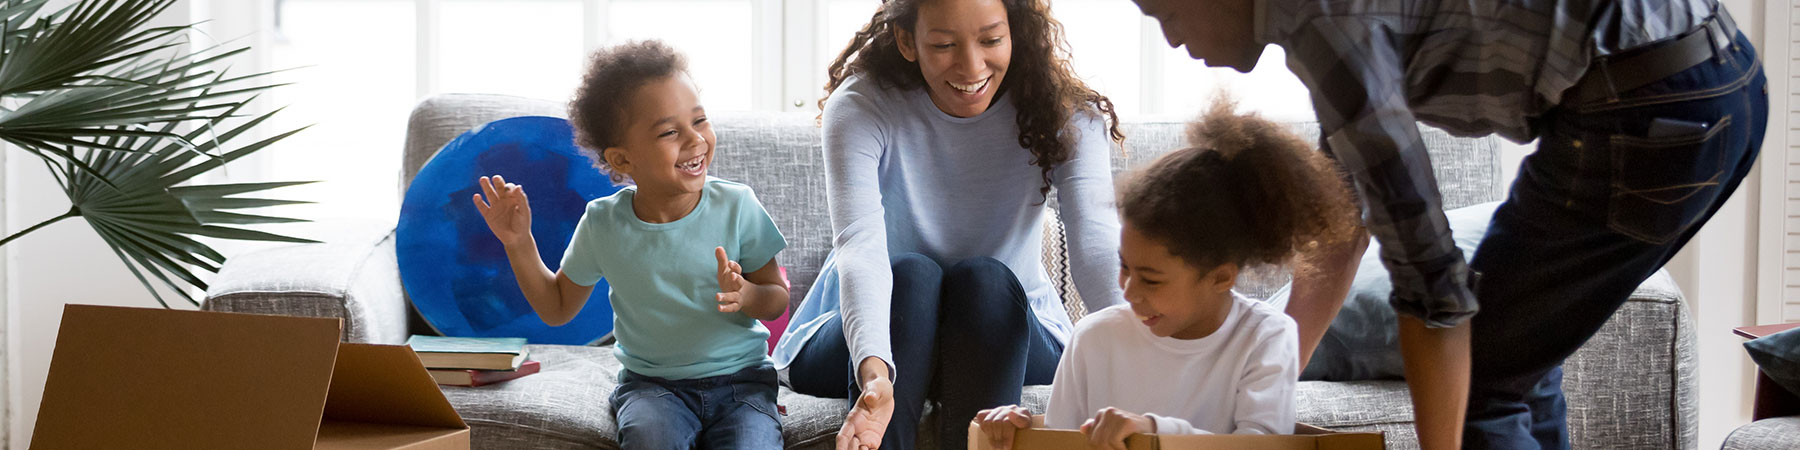 family playing with boxes in living room of new home